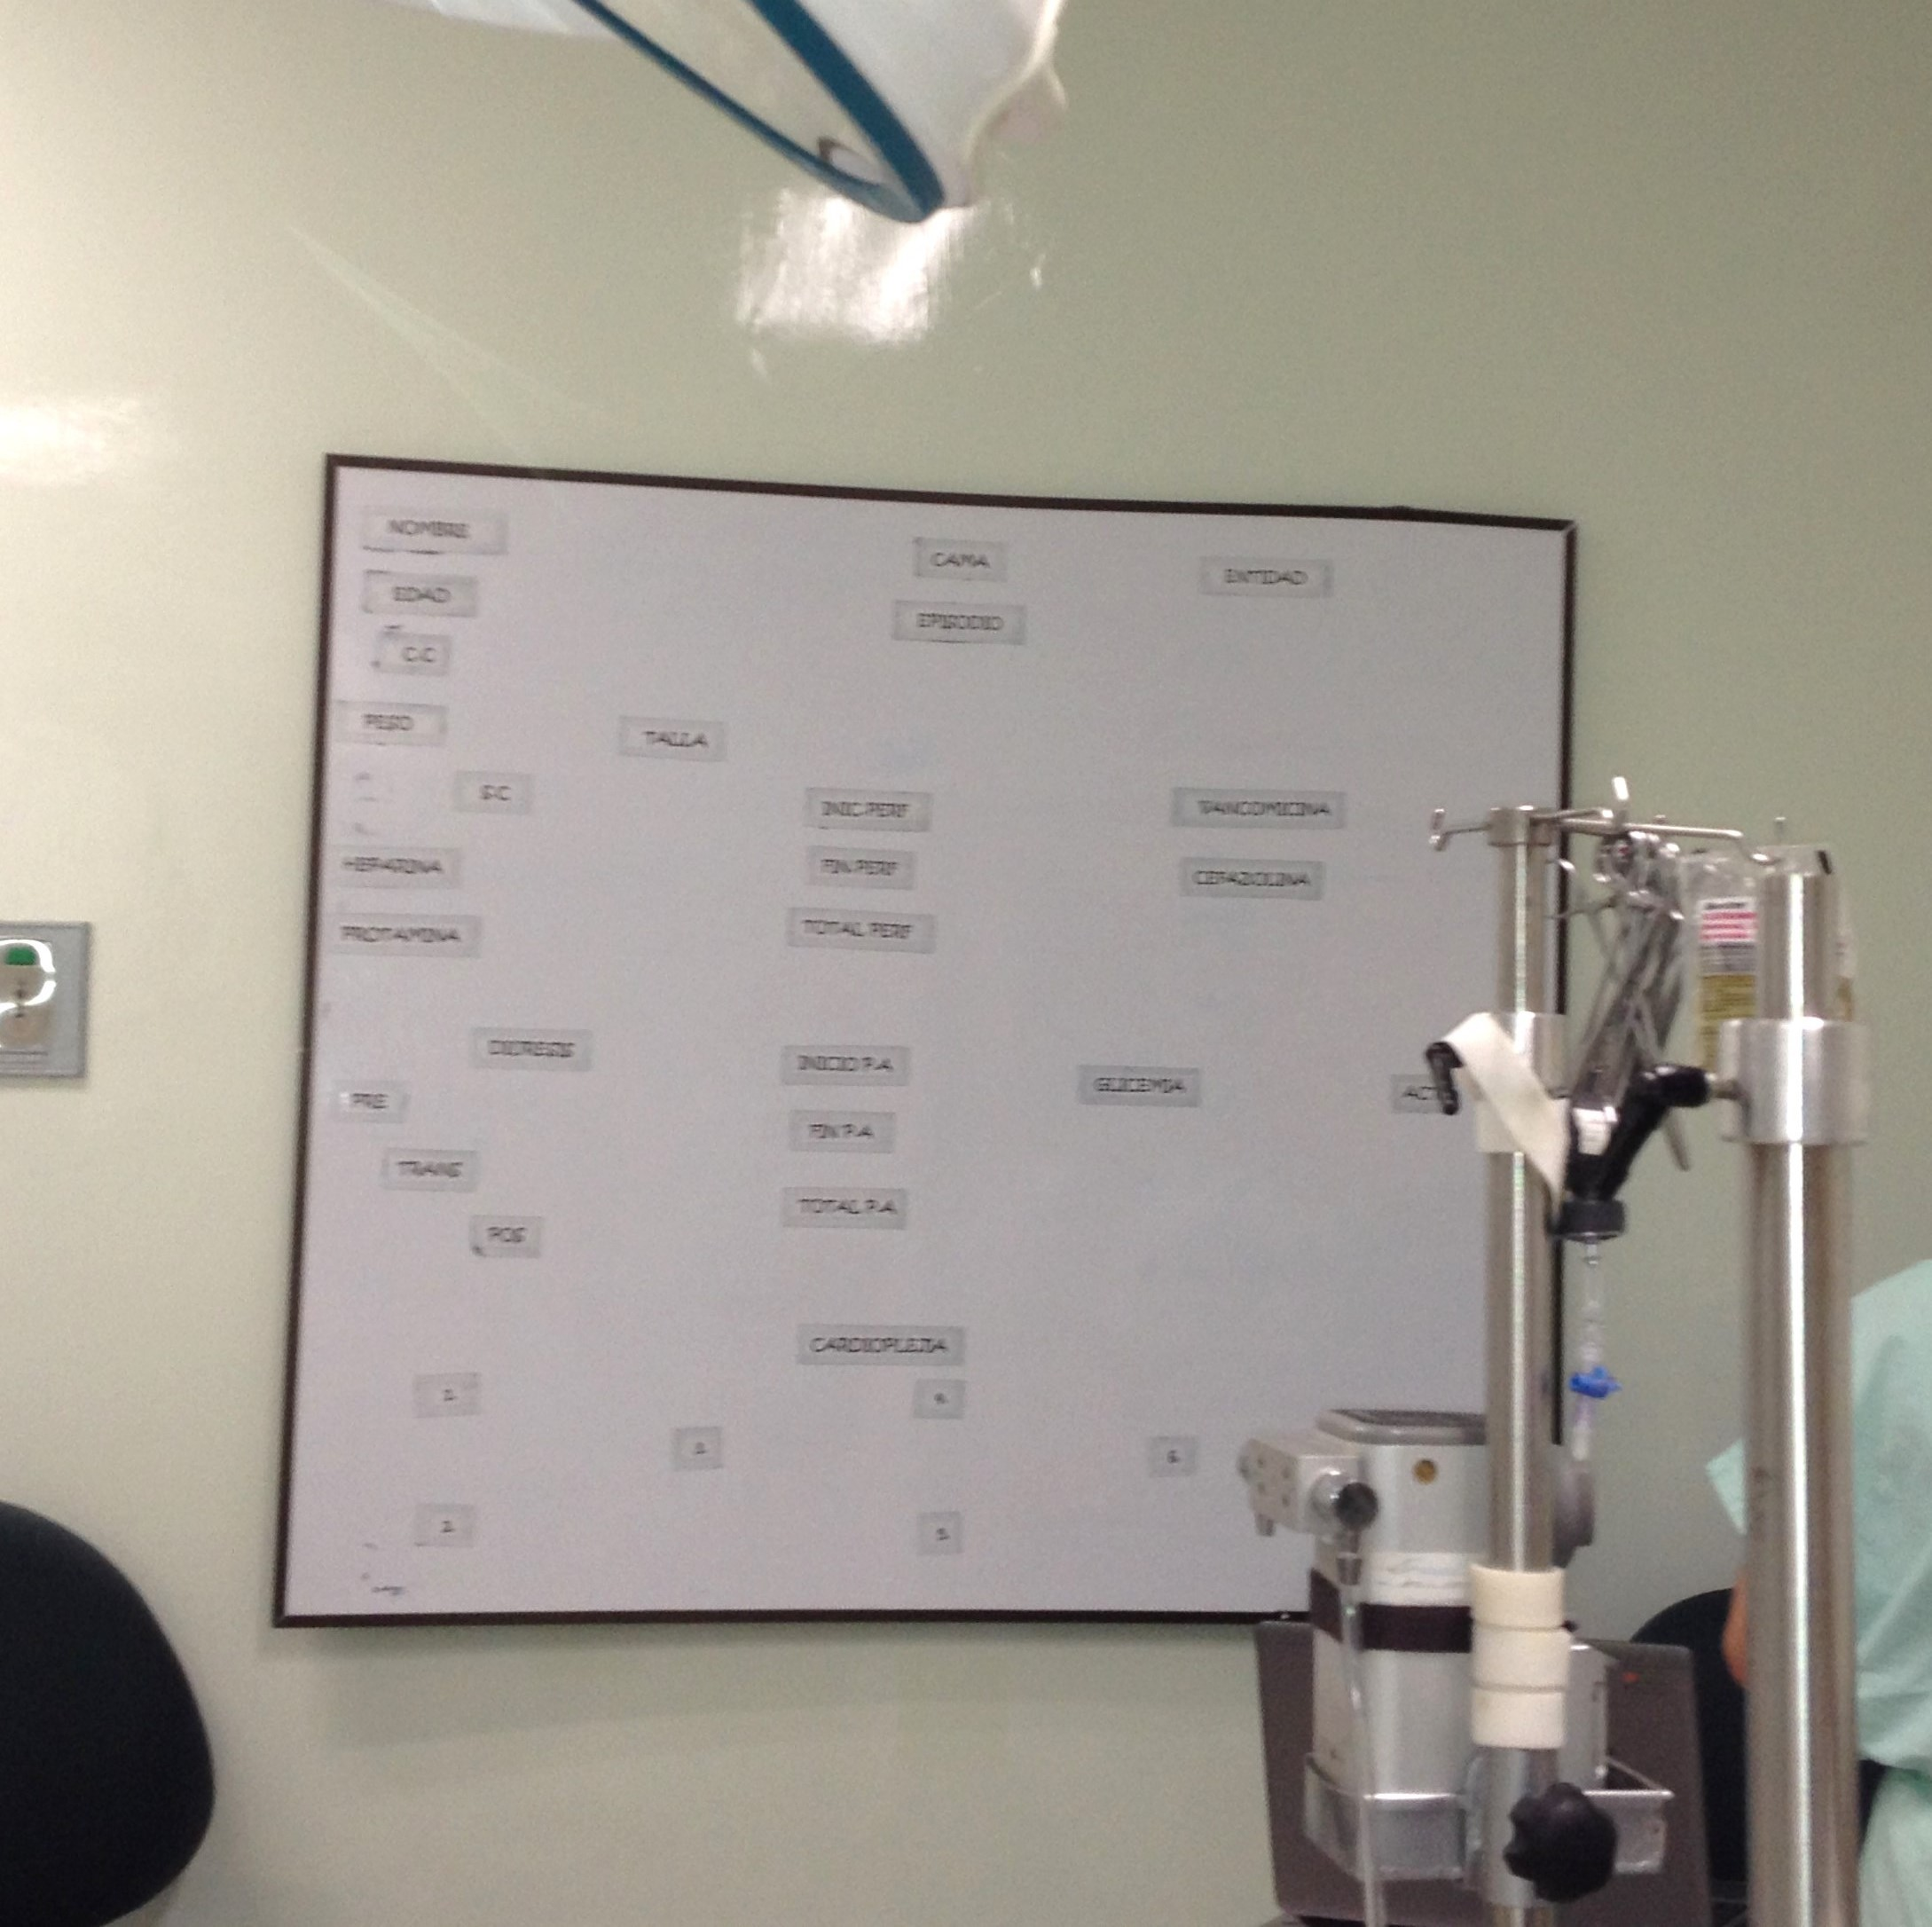 patient safety guide to surgery in latin america by then end of the case this board will be full